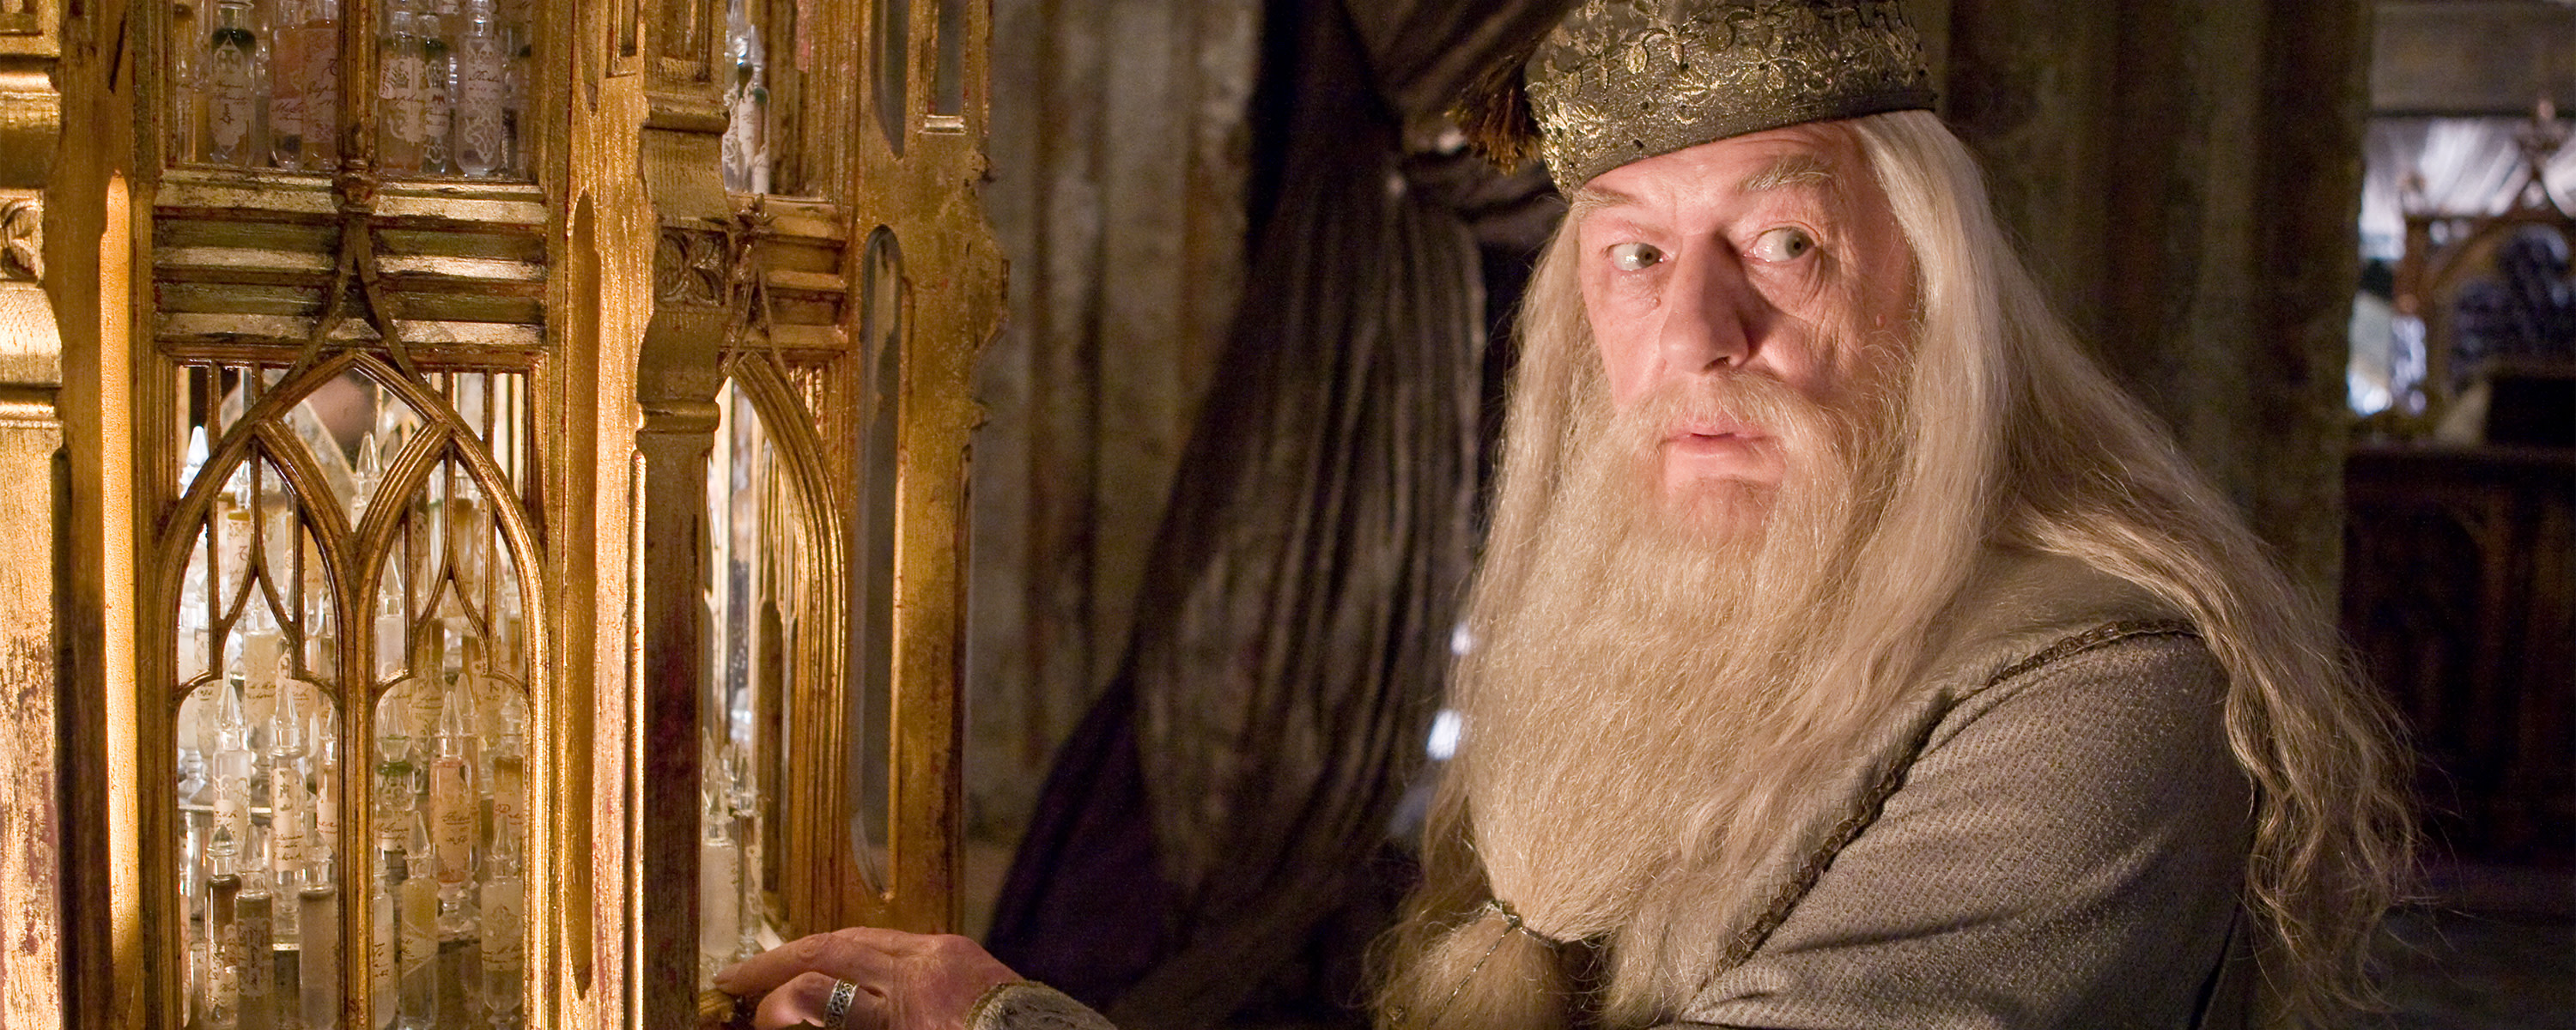 HP-F6-dumbledore-pensieve-web-header